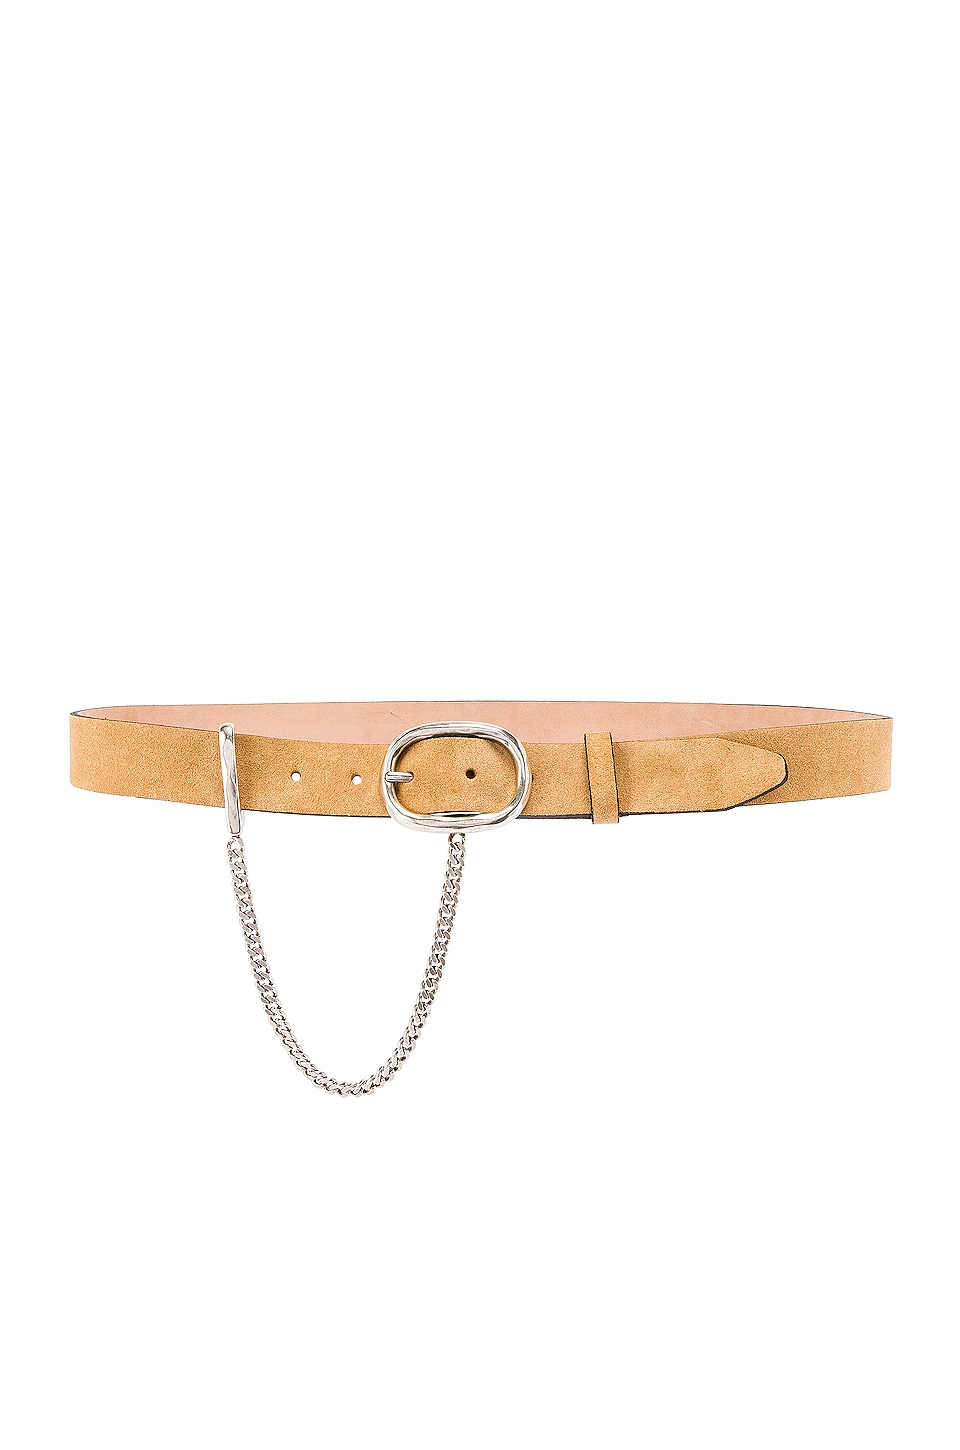 Rag & Bone Wingman Belt in Almond